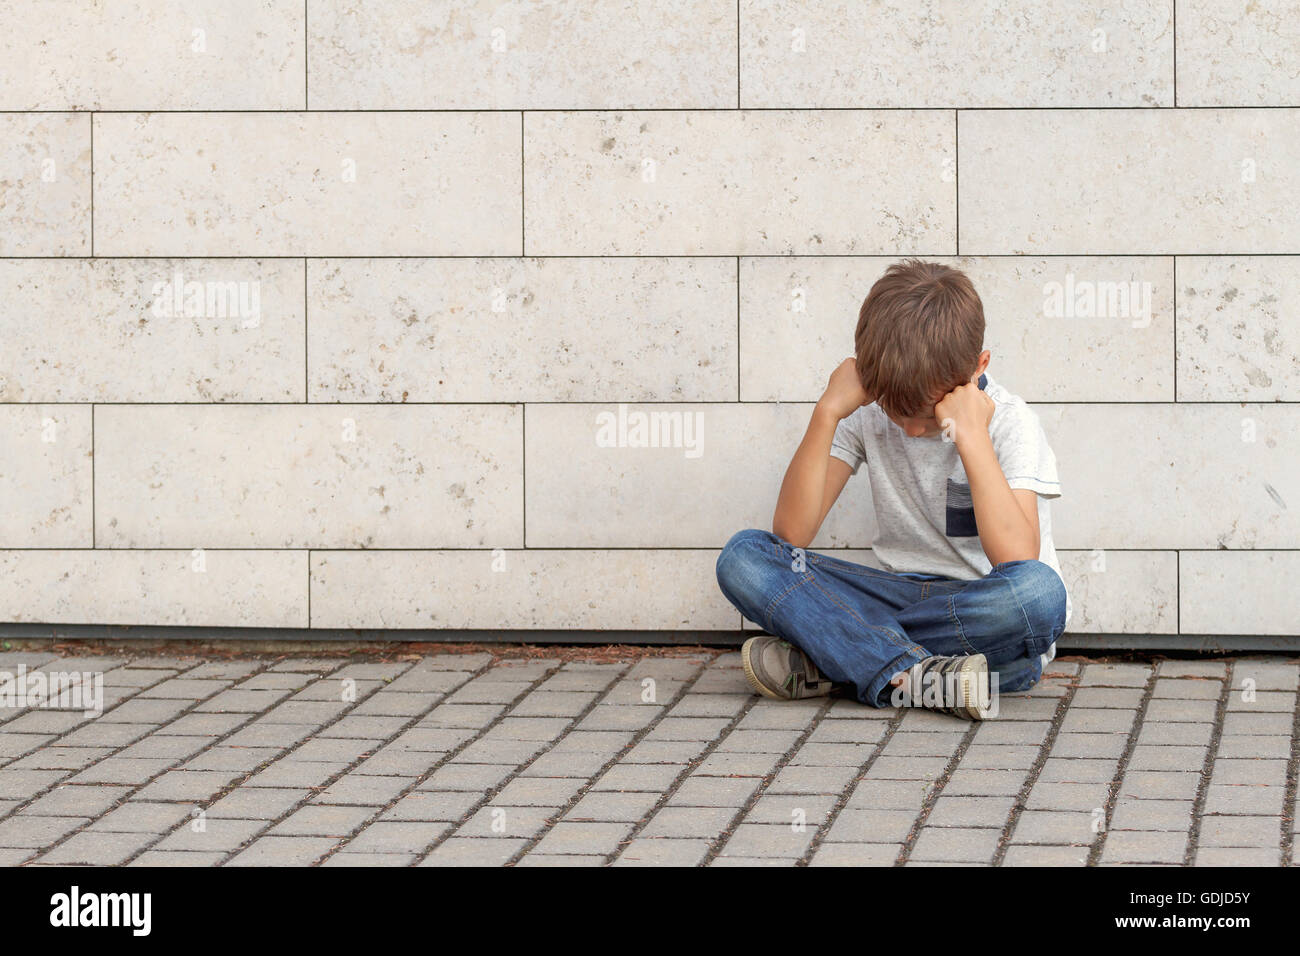 Sad, lonely, unhappy, upset, disappointed tired child sitting alone on the ground Outdoor - Stock Image